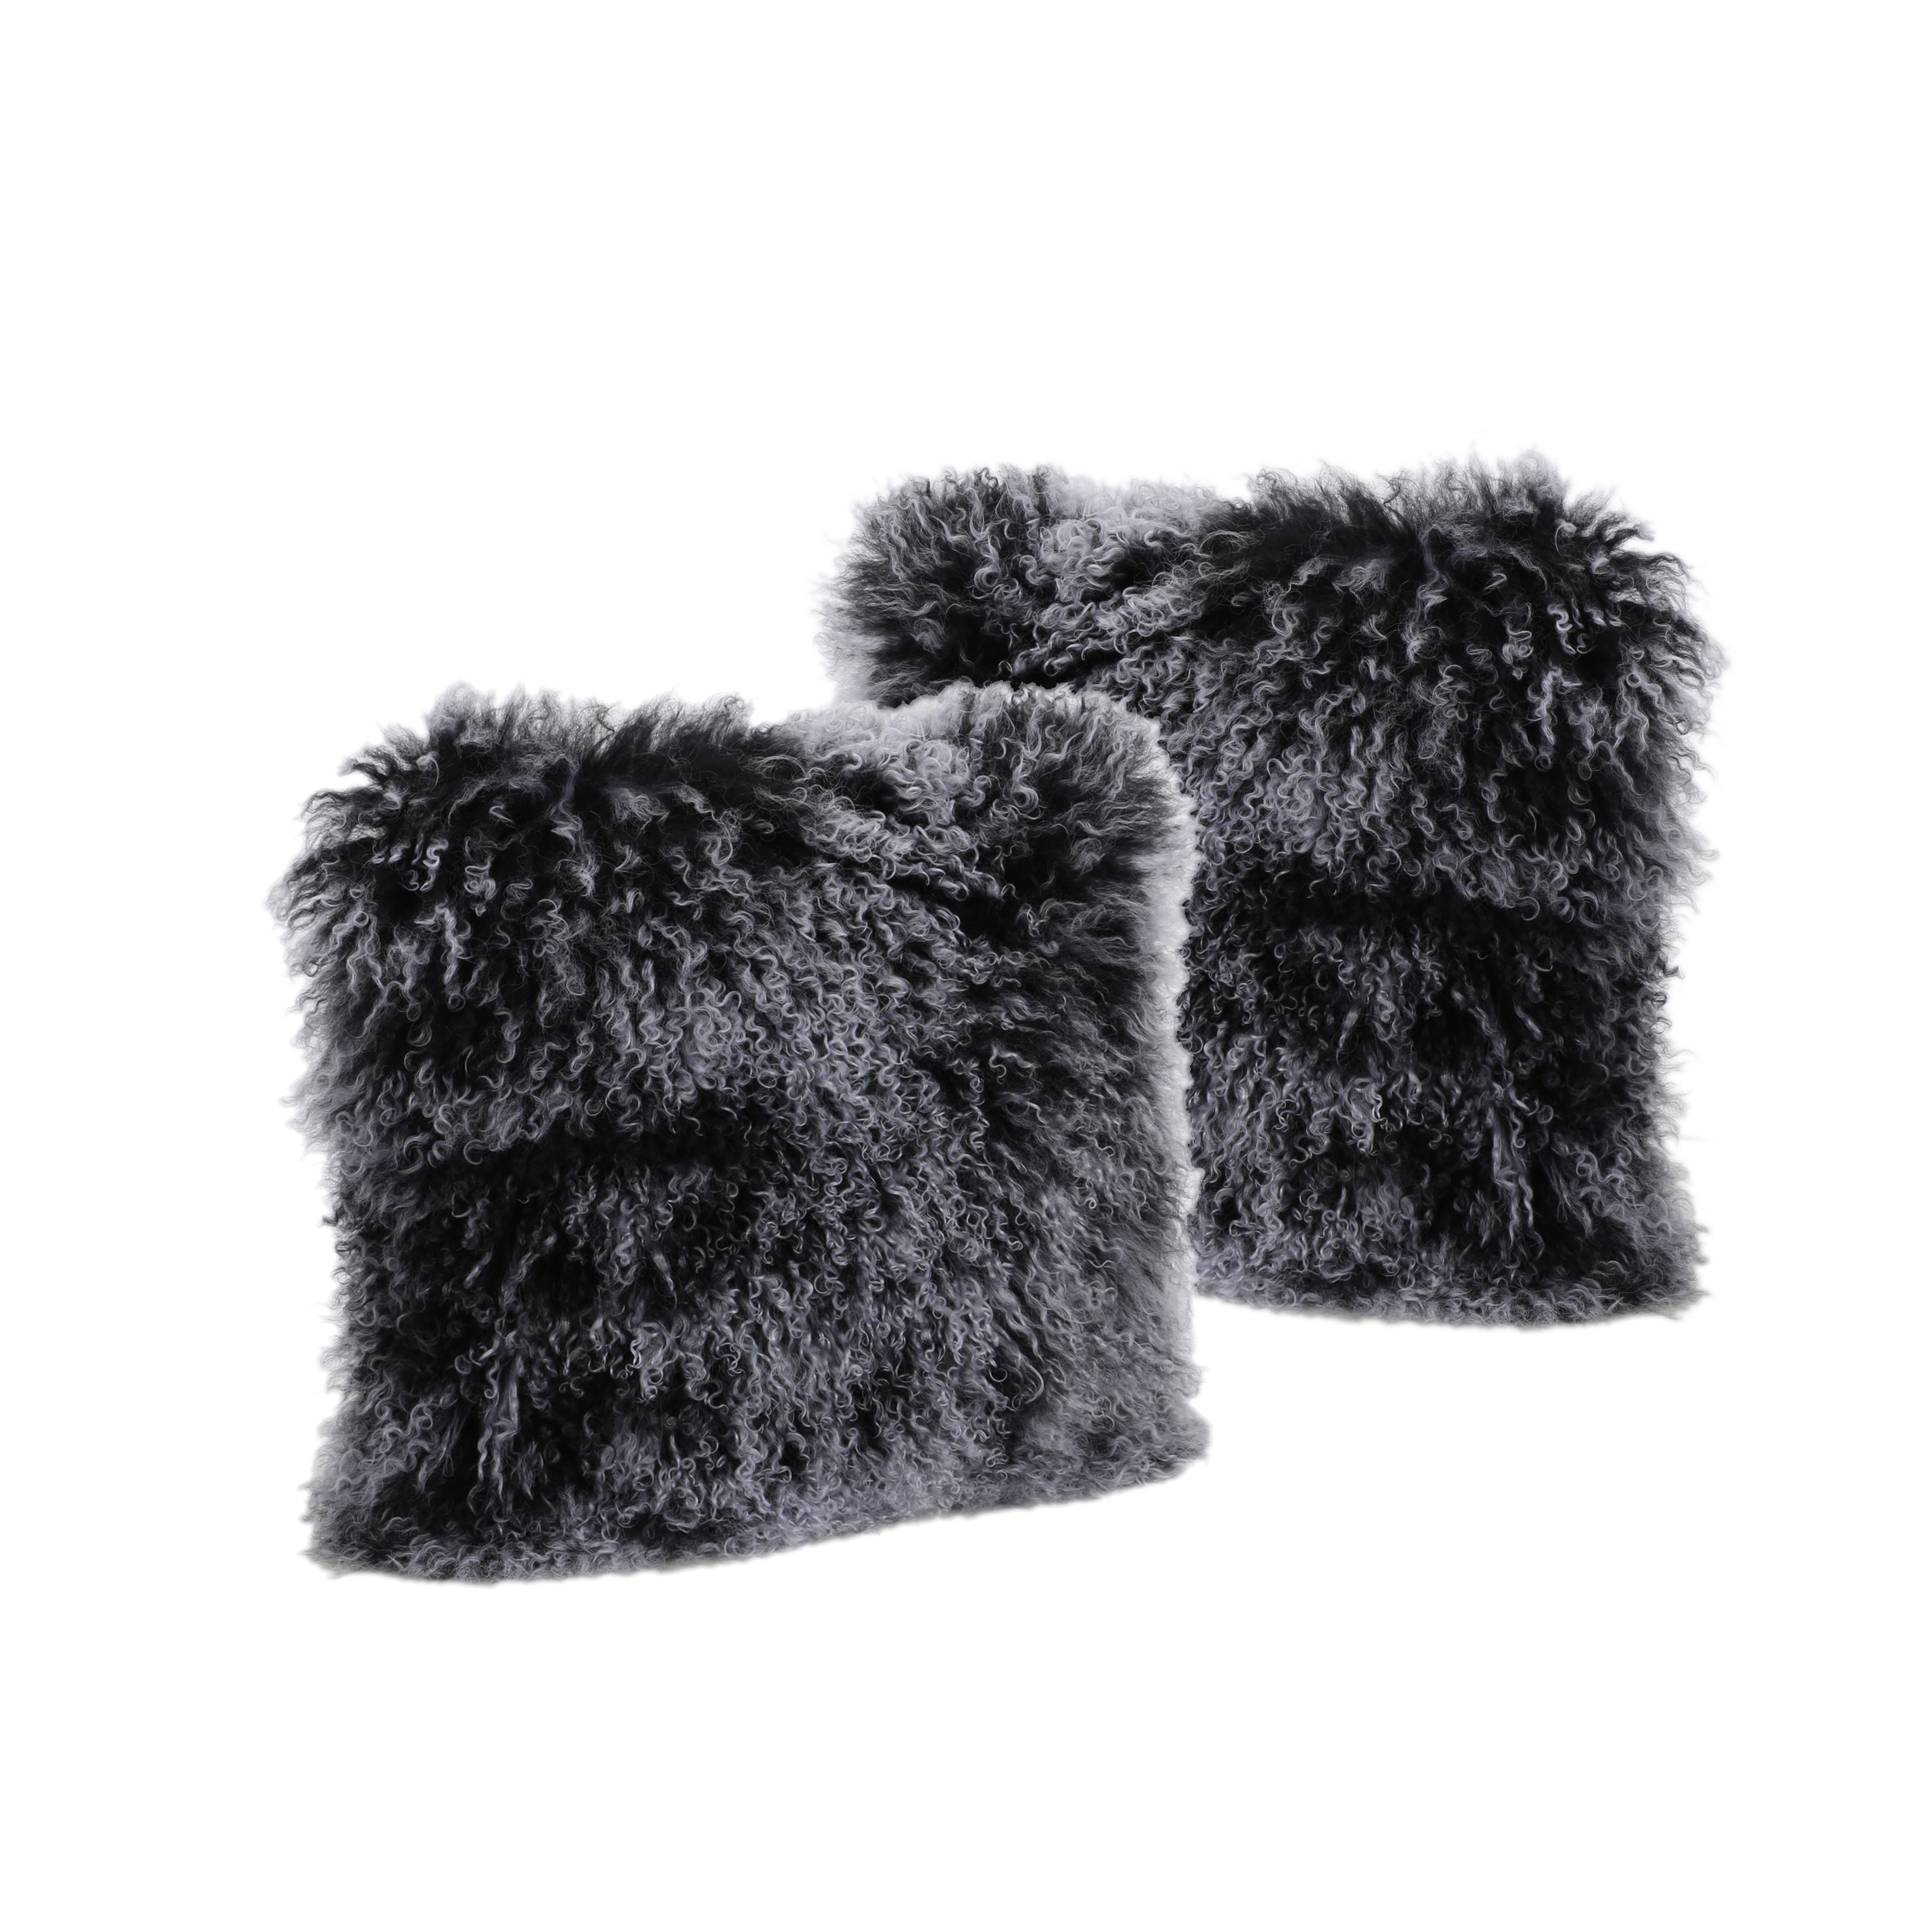 Marybelle Shaggy Lamb Fur 16 x 16 Square Pillows, Set of 2, Black Snow Top